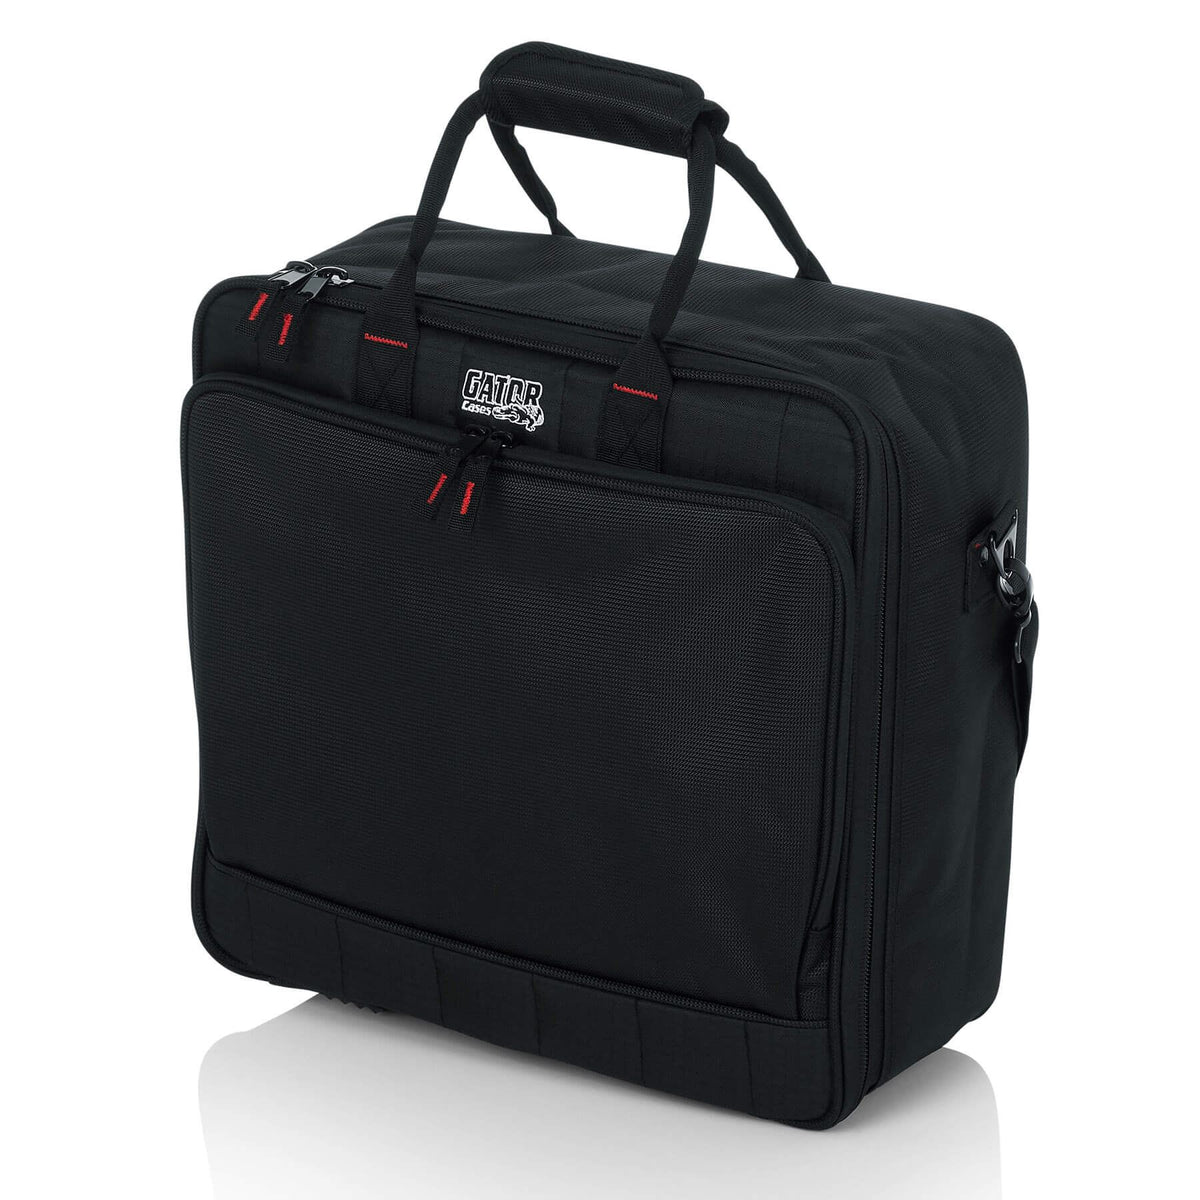 Gator Cases Padded Nylon Equipment Bag for Roland PD105WT, SP-606, SPD-S, TD-20, VR-5 Models